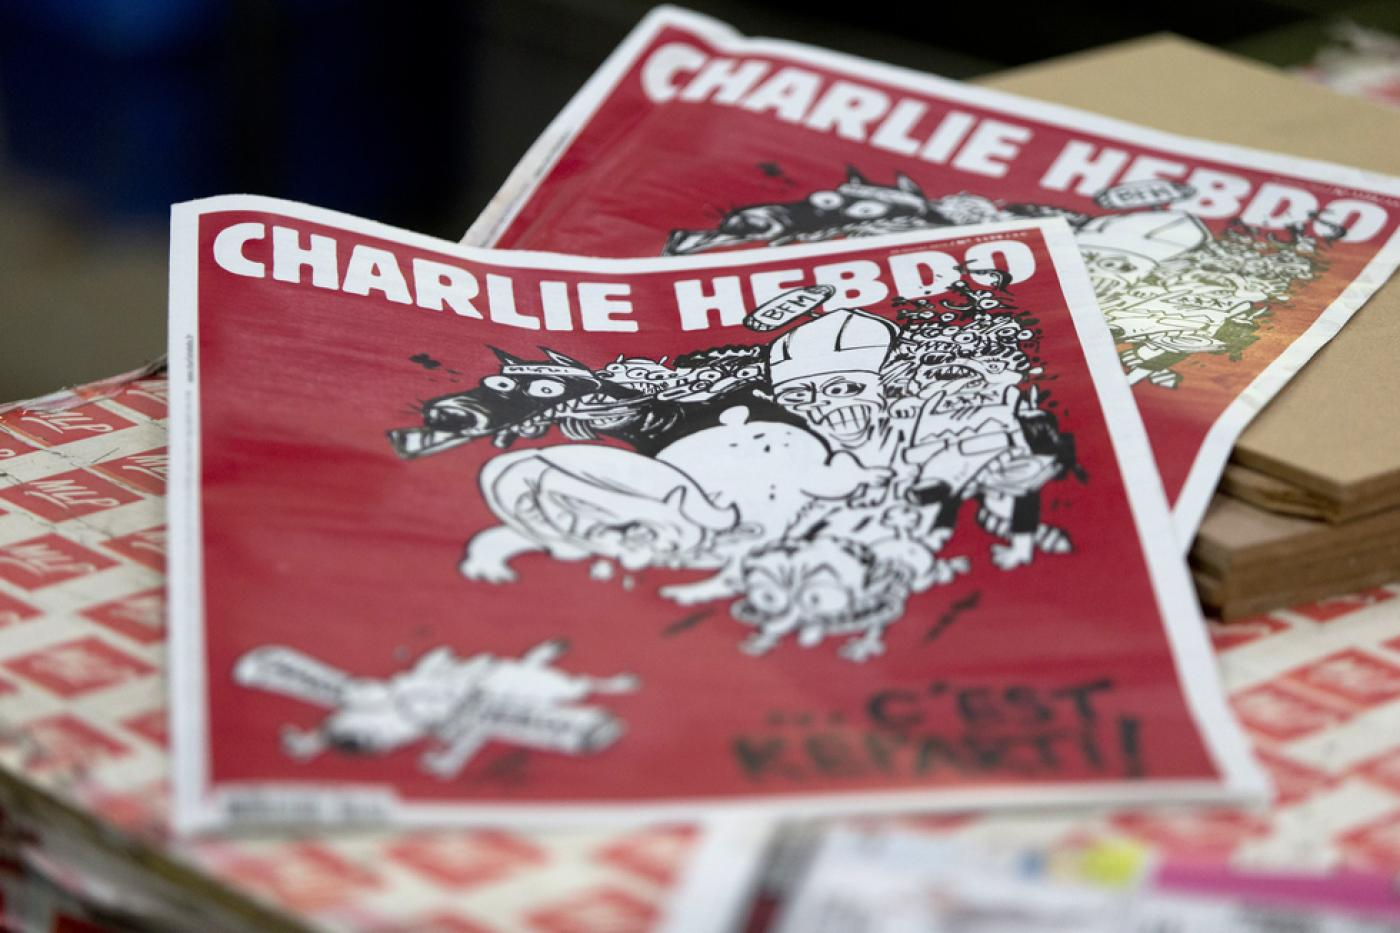 Controversy Surrounds Charlie Hebdo S Latest Cartoon Middle East Eye